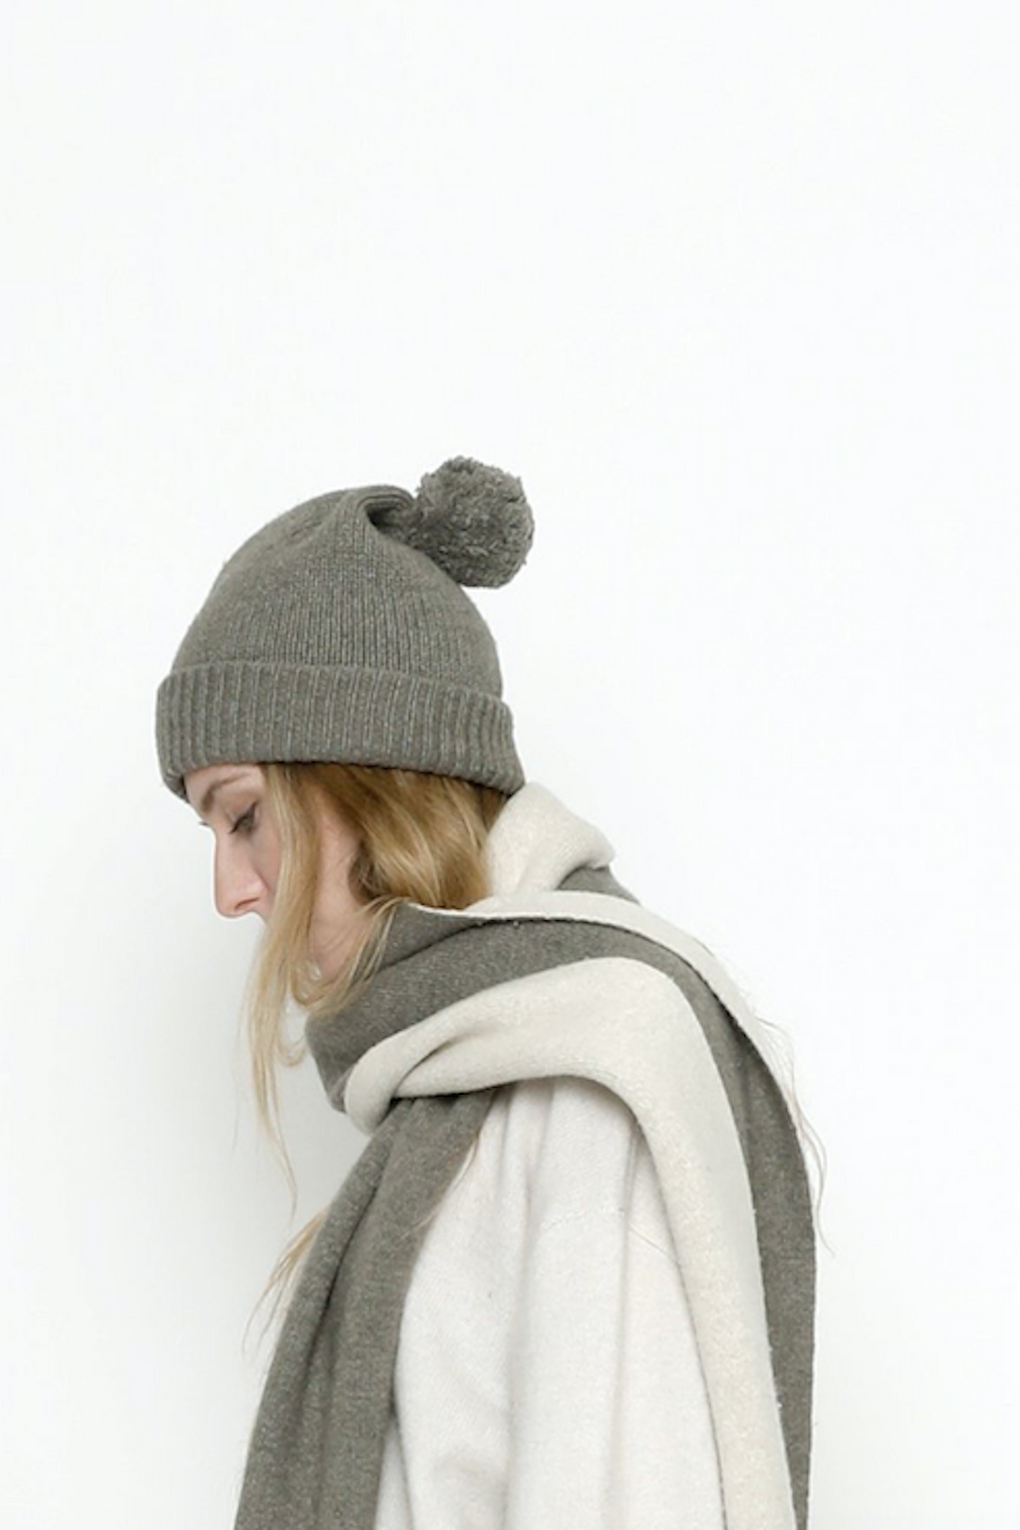 7115 by Szeki-7115 by Szeki pom pom beanie-gray beanie hat-pom pom winter hat-gray winter hat-Idun-St. Paul